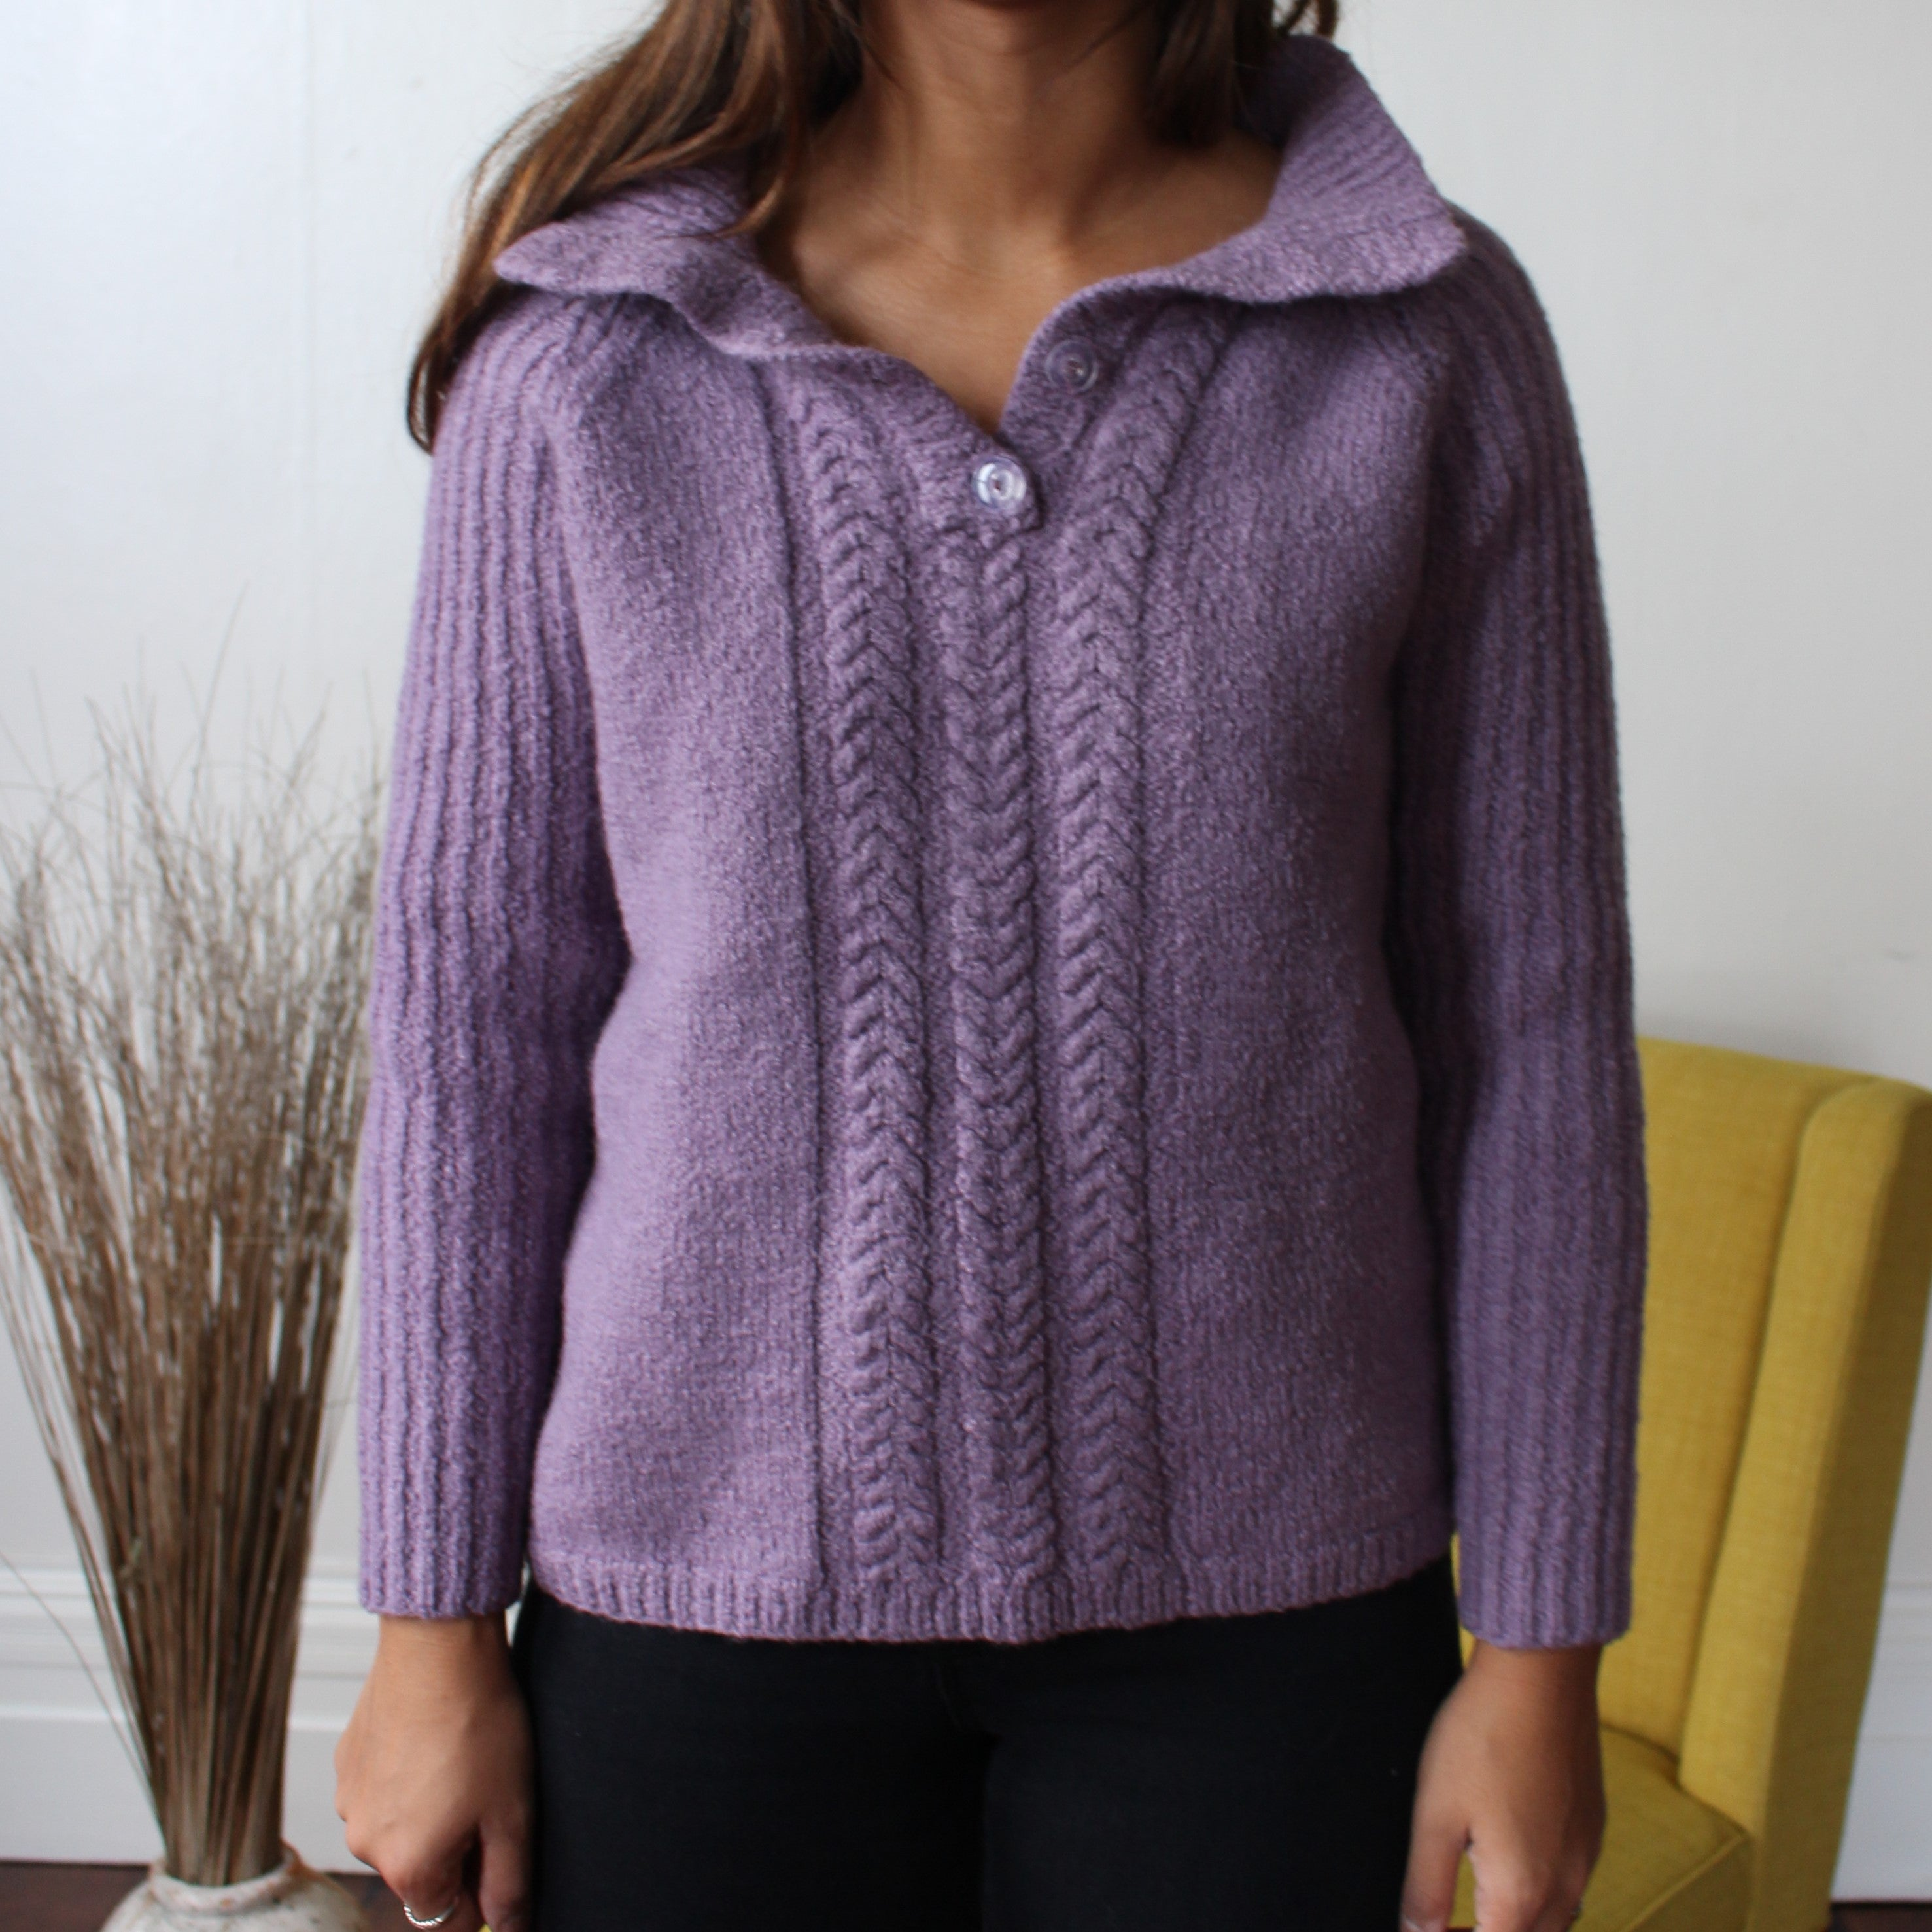 Lavender Lucky Cropped Knitwear - ZoMa Collective